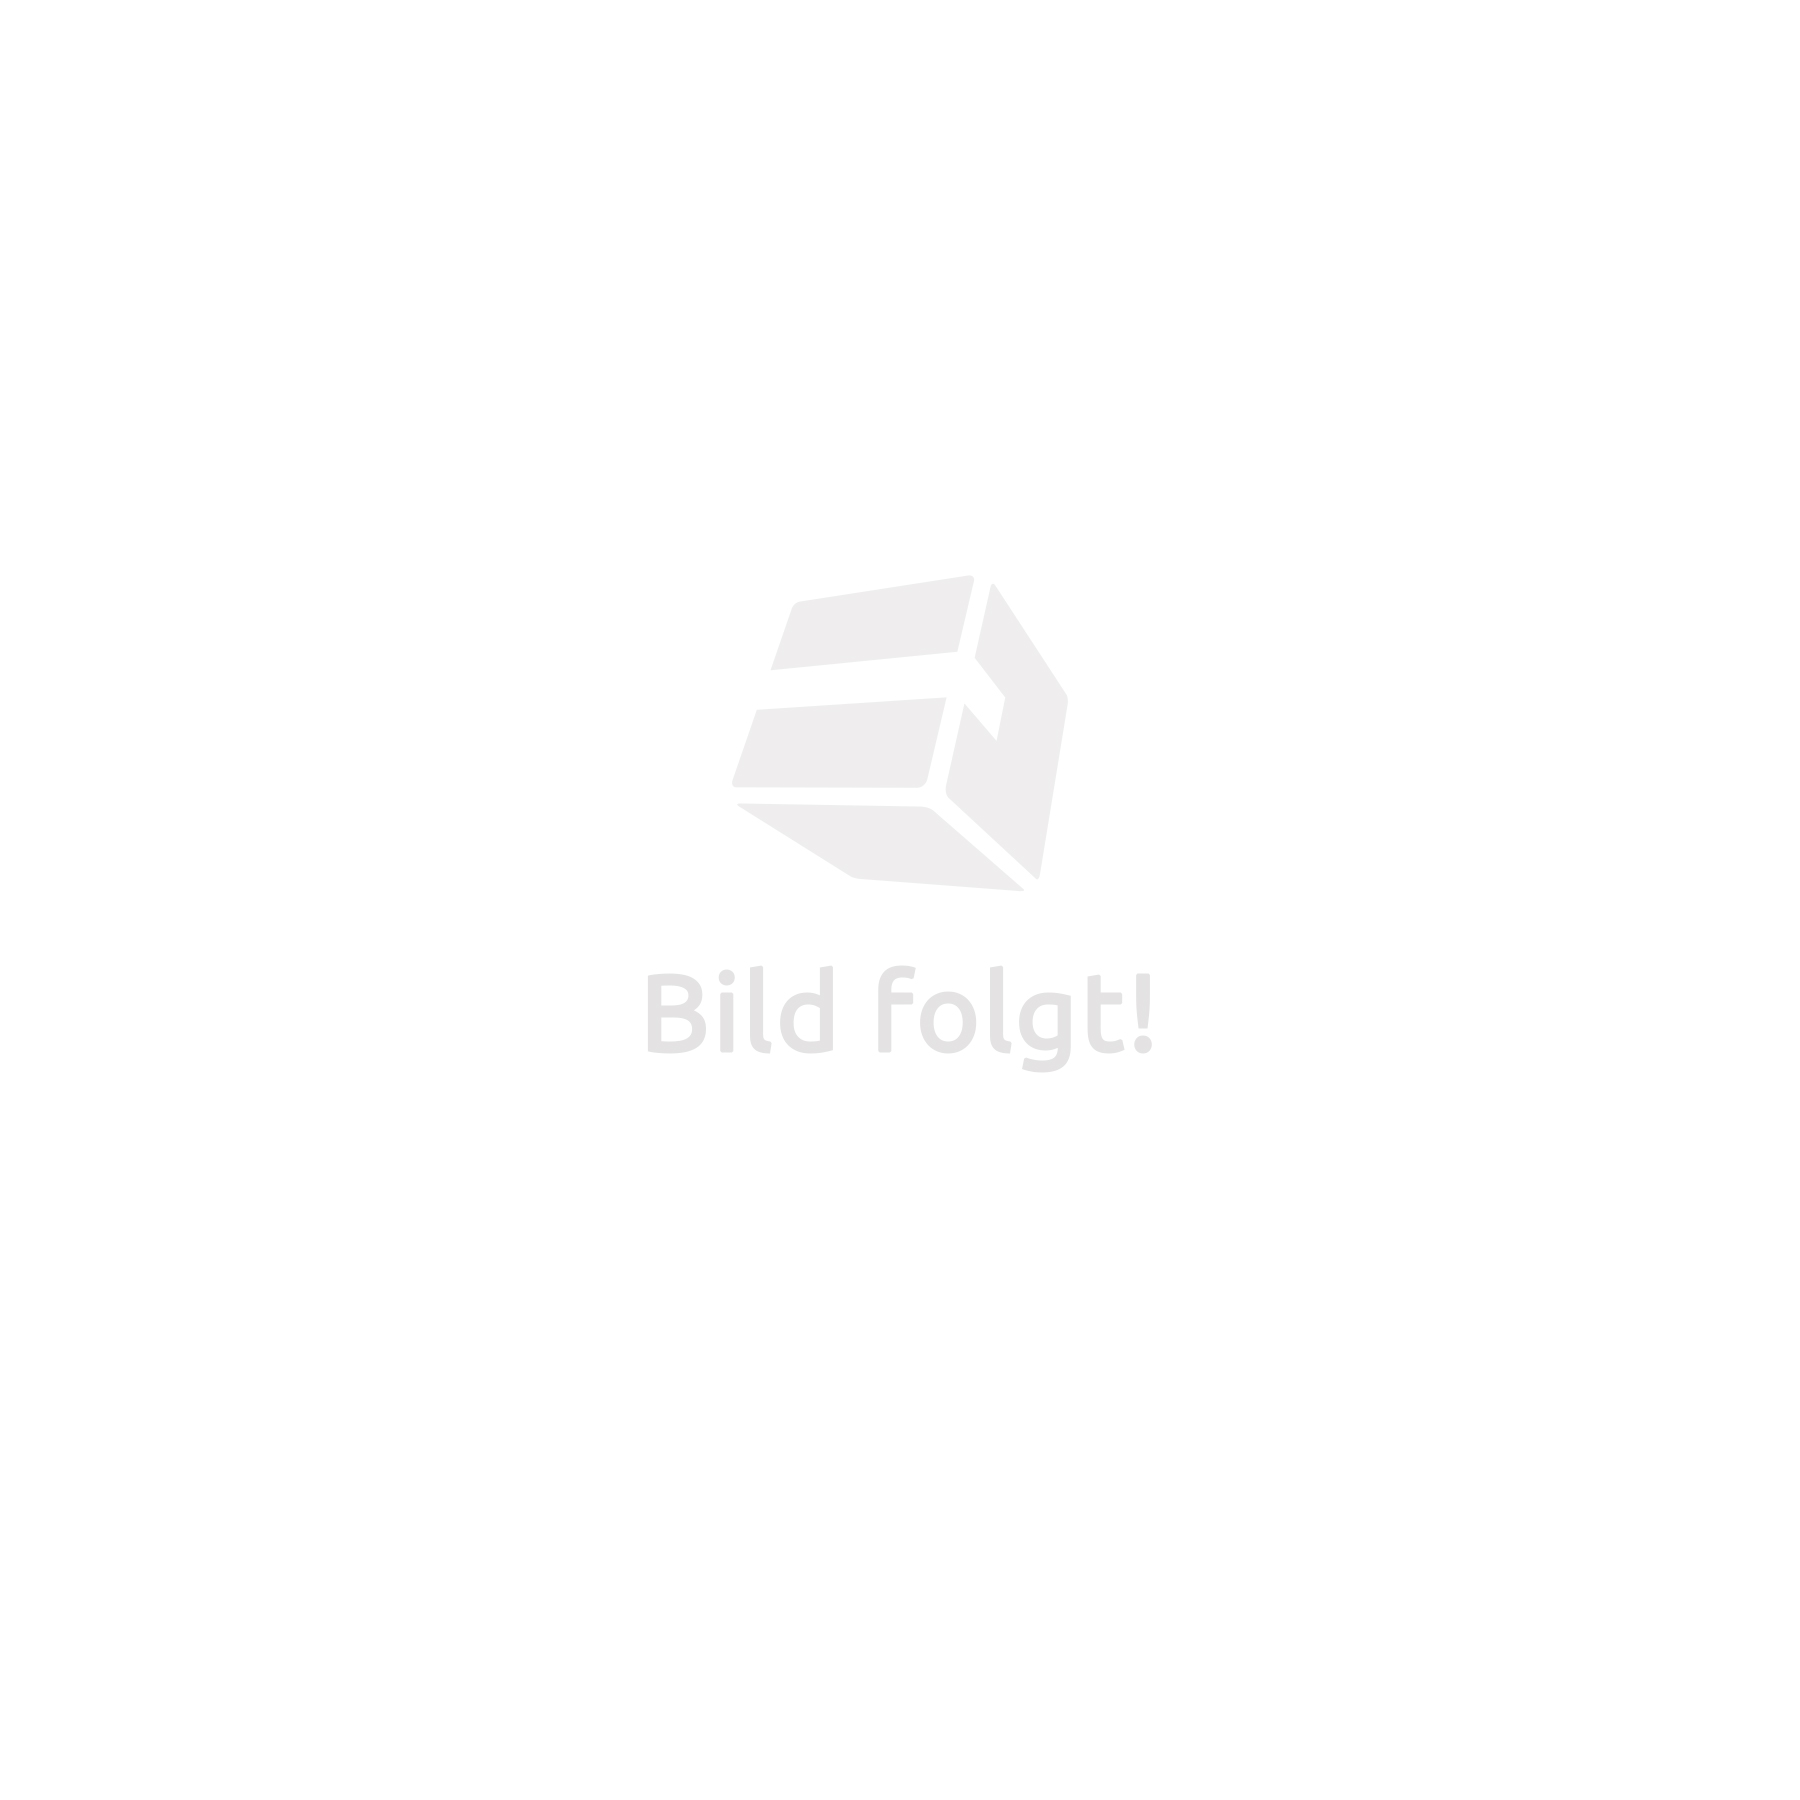 Bathroom stool with storage space white